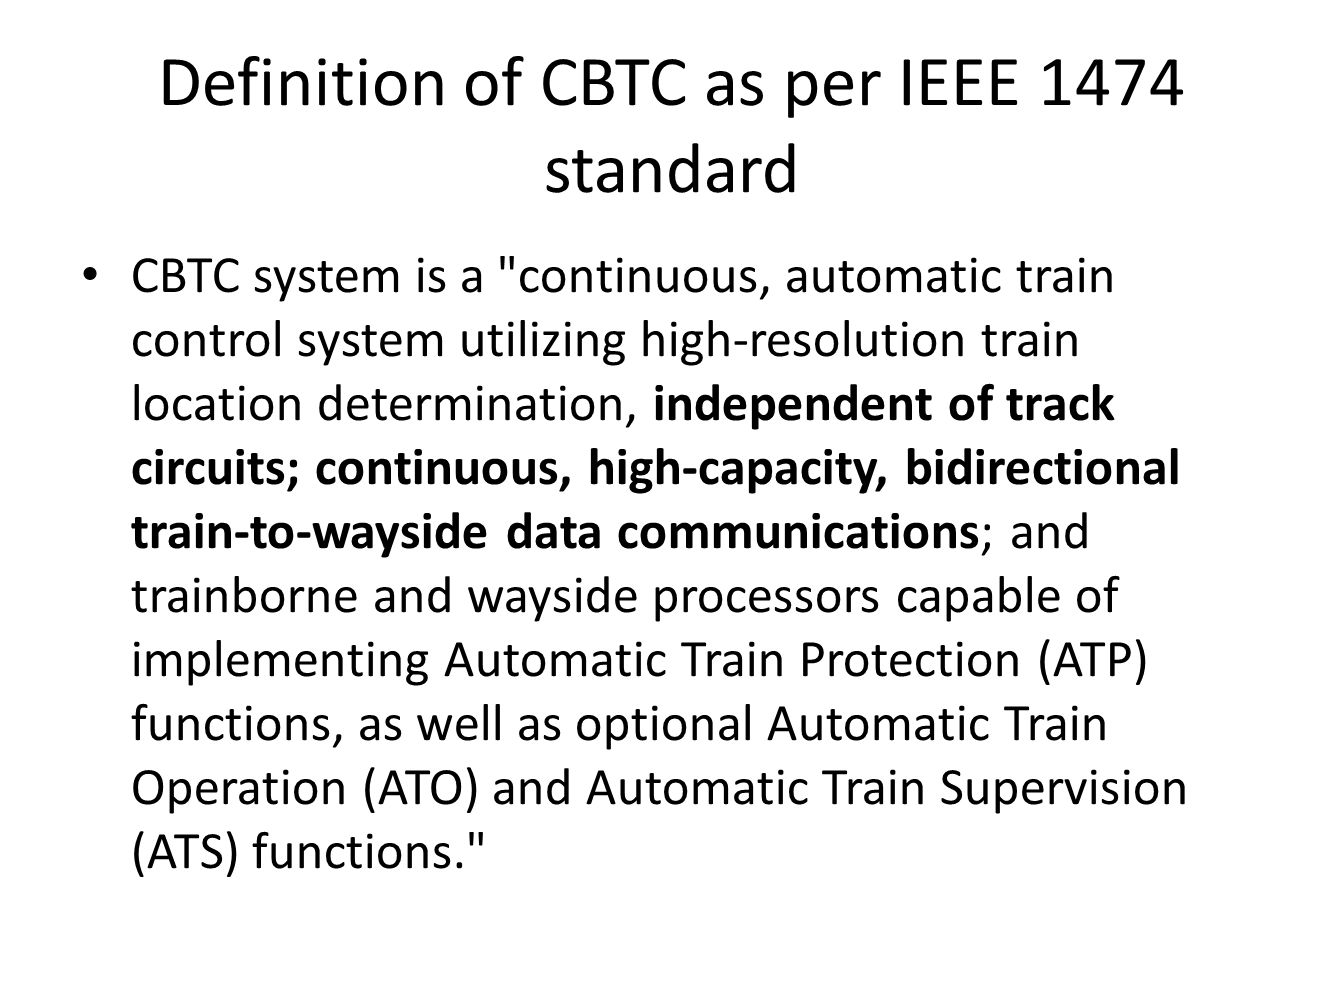 Communication based train control ppt video online download for Ieee definition